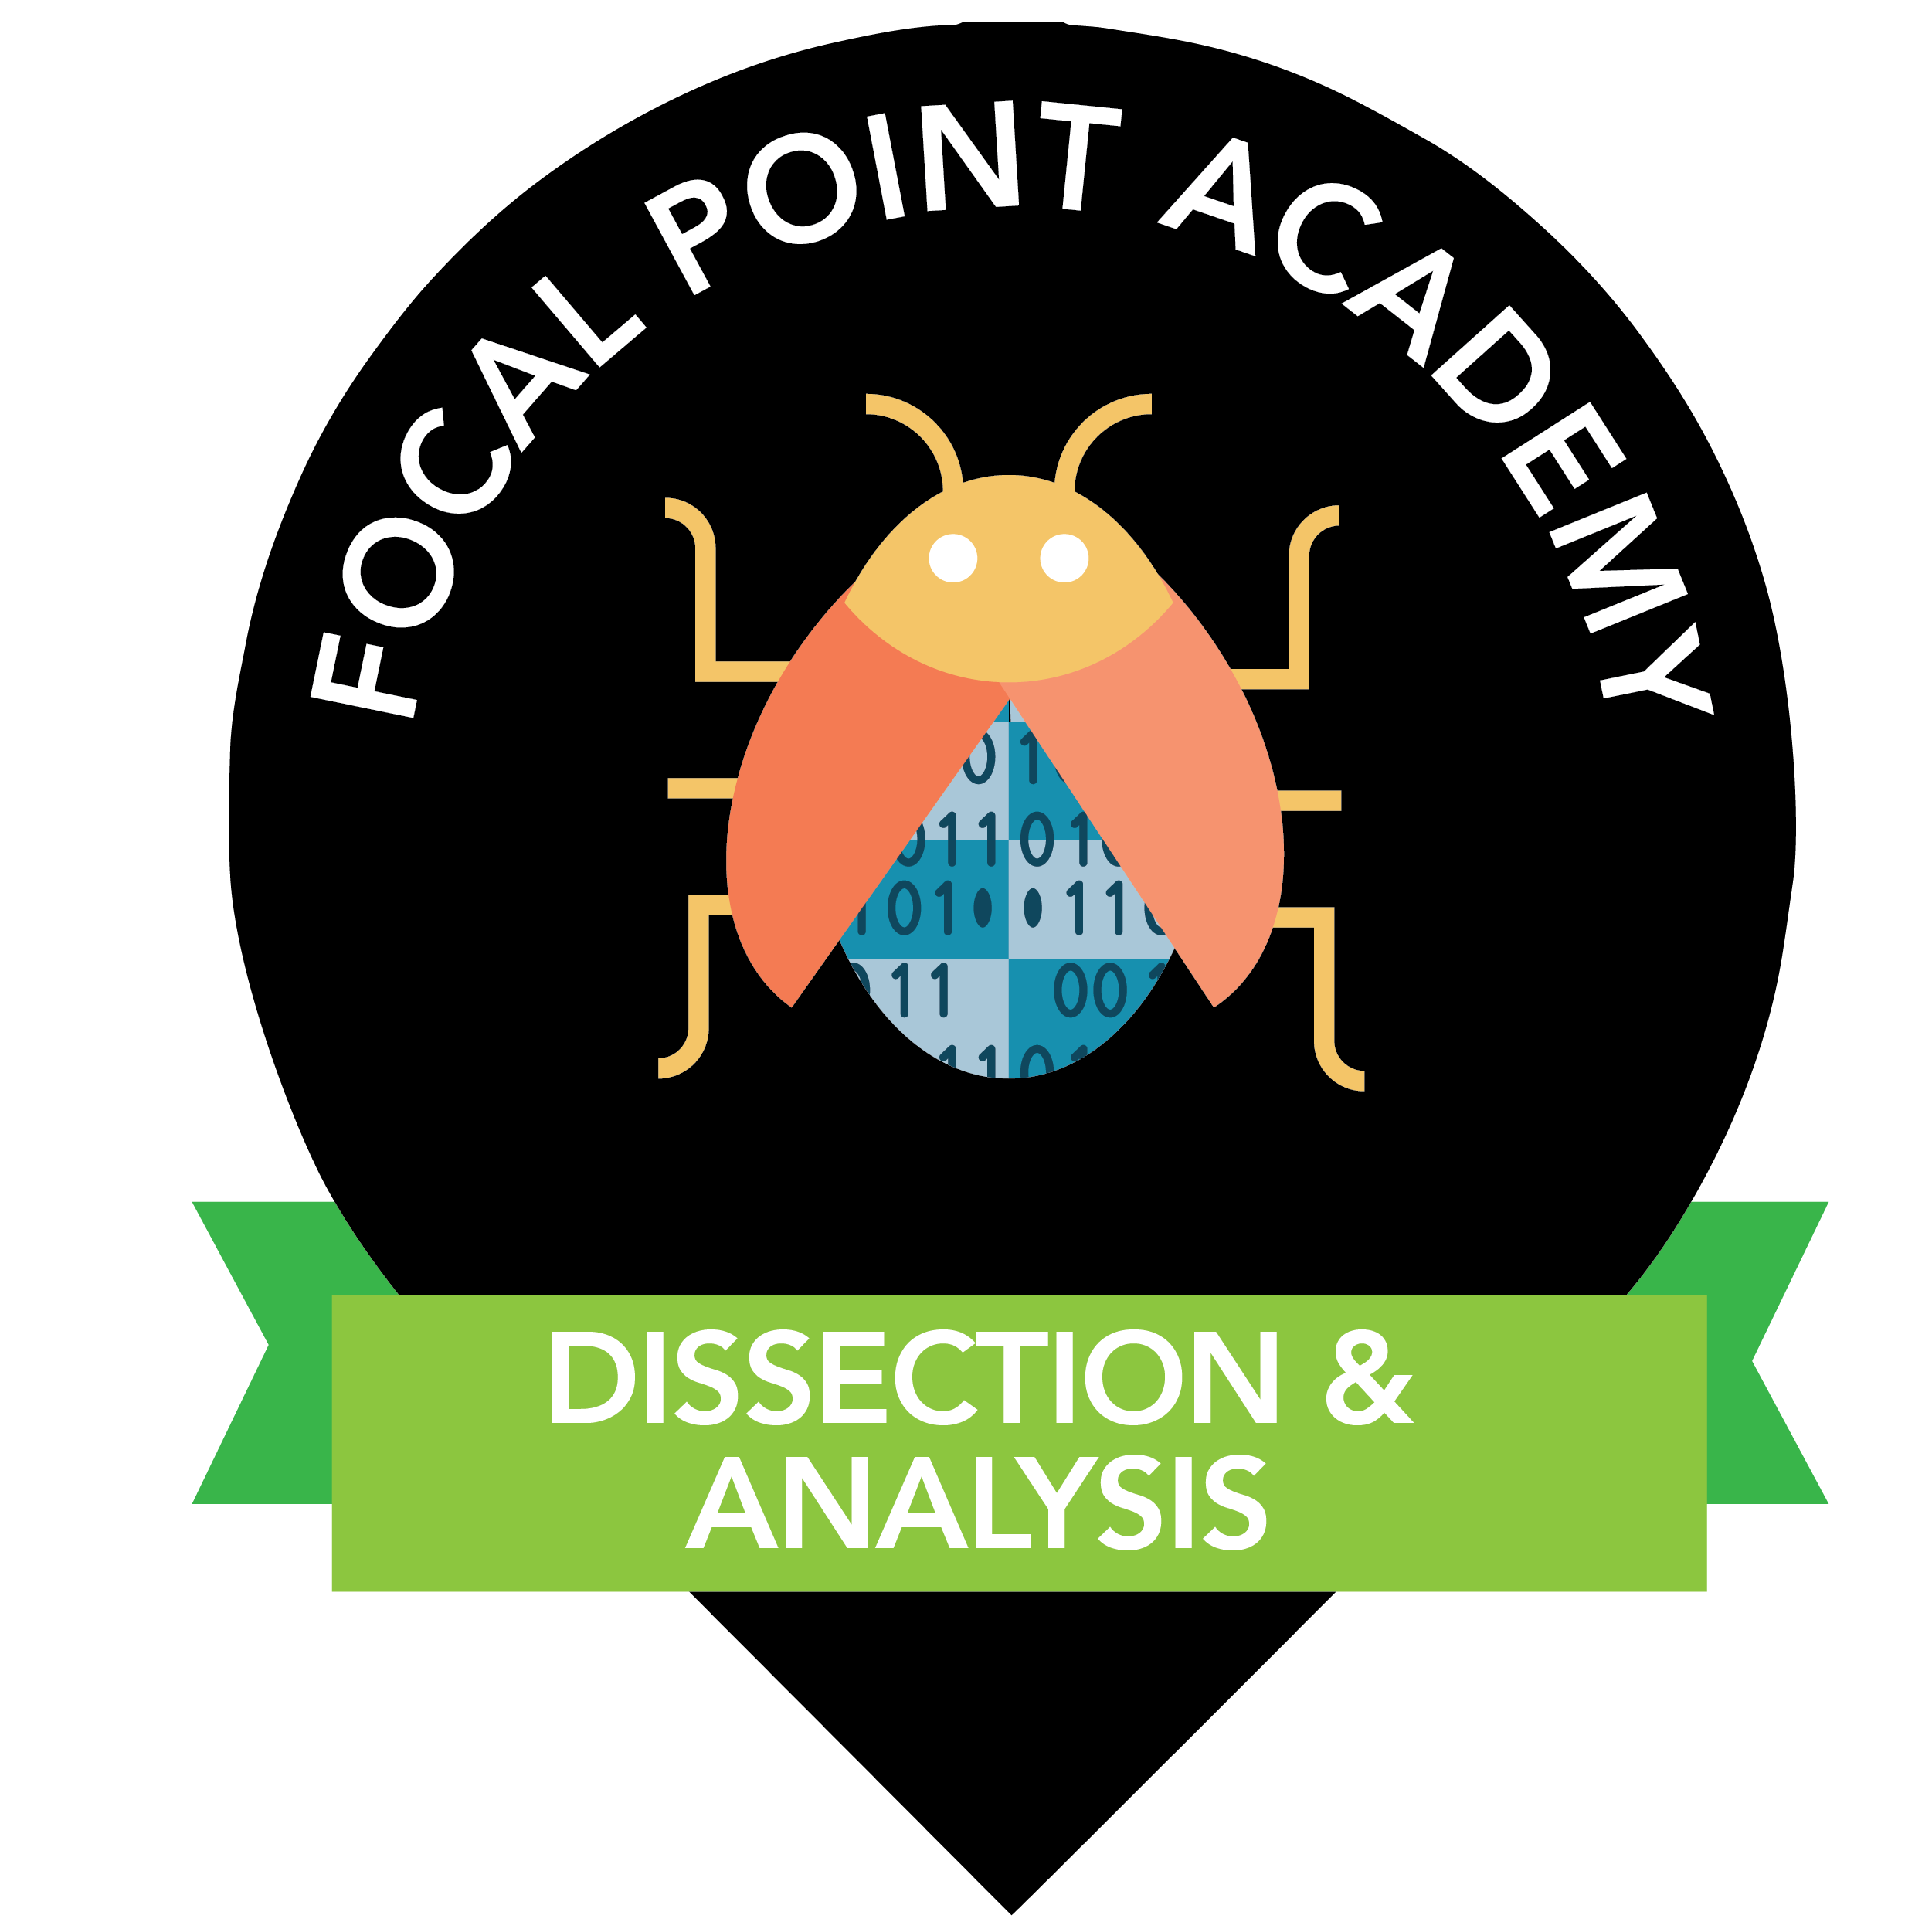 Dissection and Analysis of Network Traffic